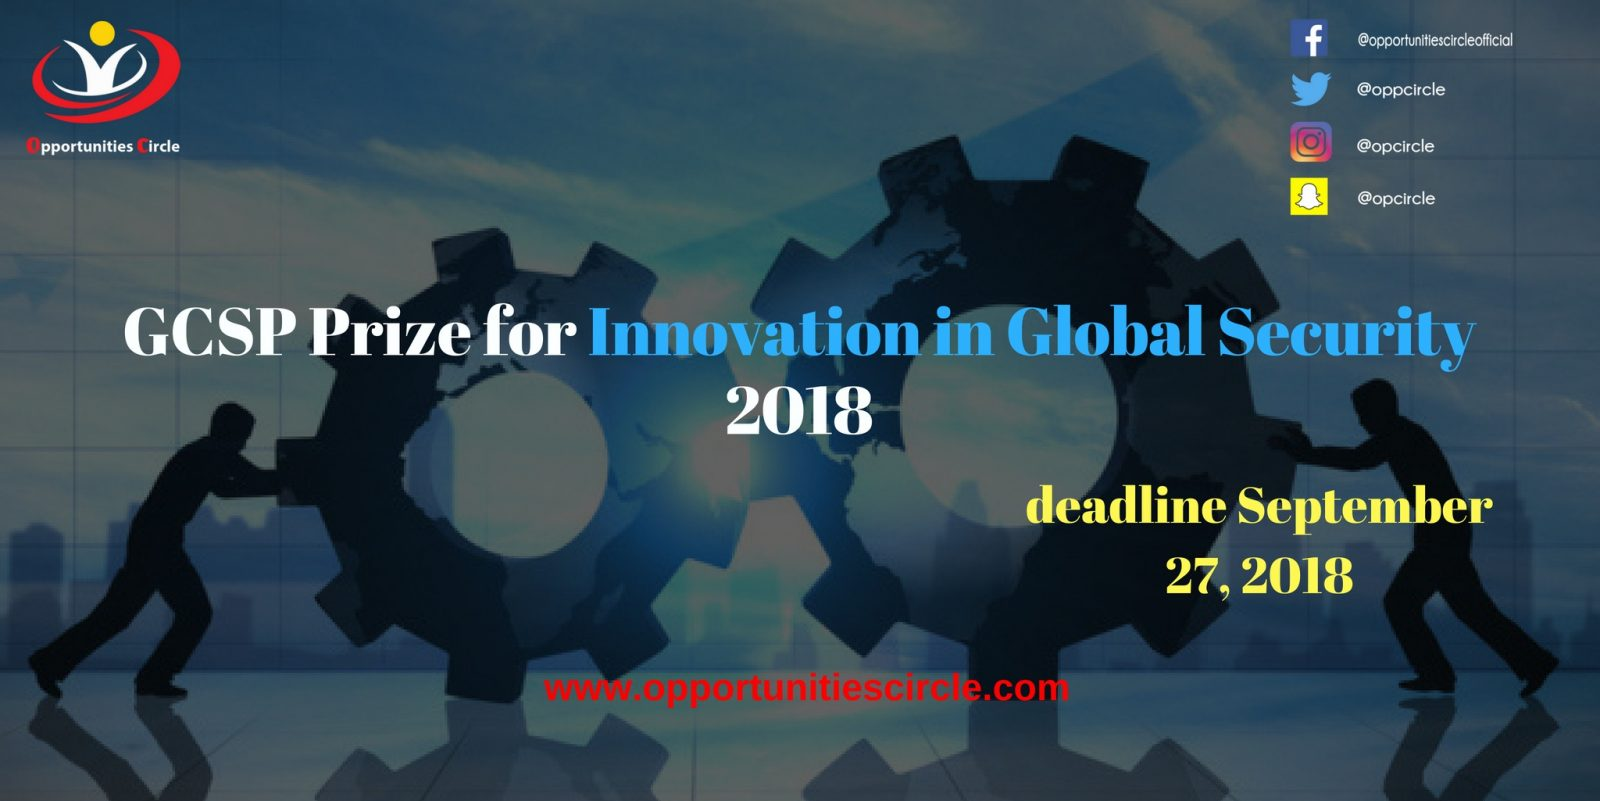 GCSP Prize for Innovation in Global Security 2018 - GCSP Prize for Innovation in Global Security 2018